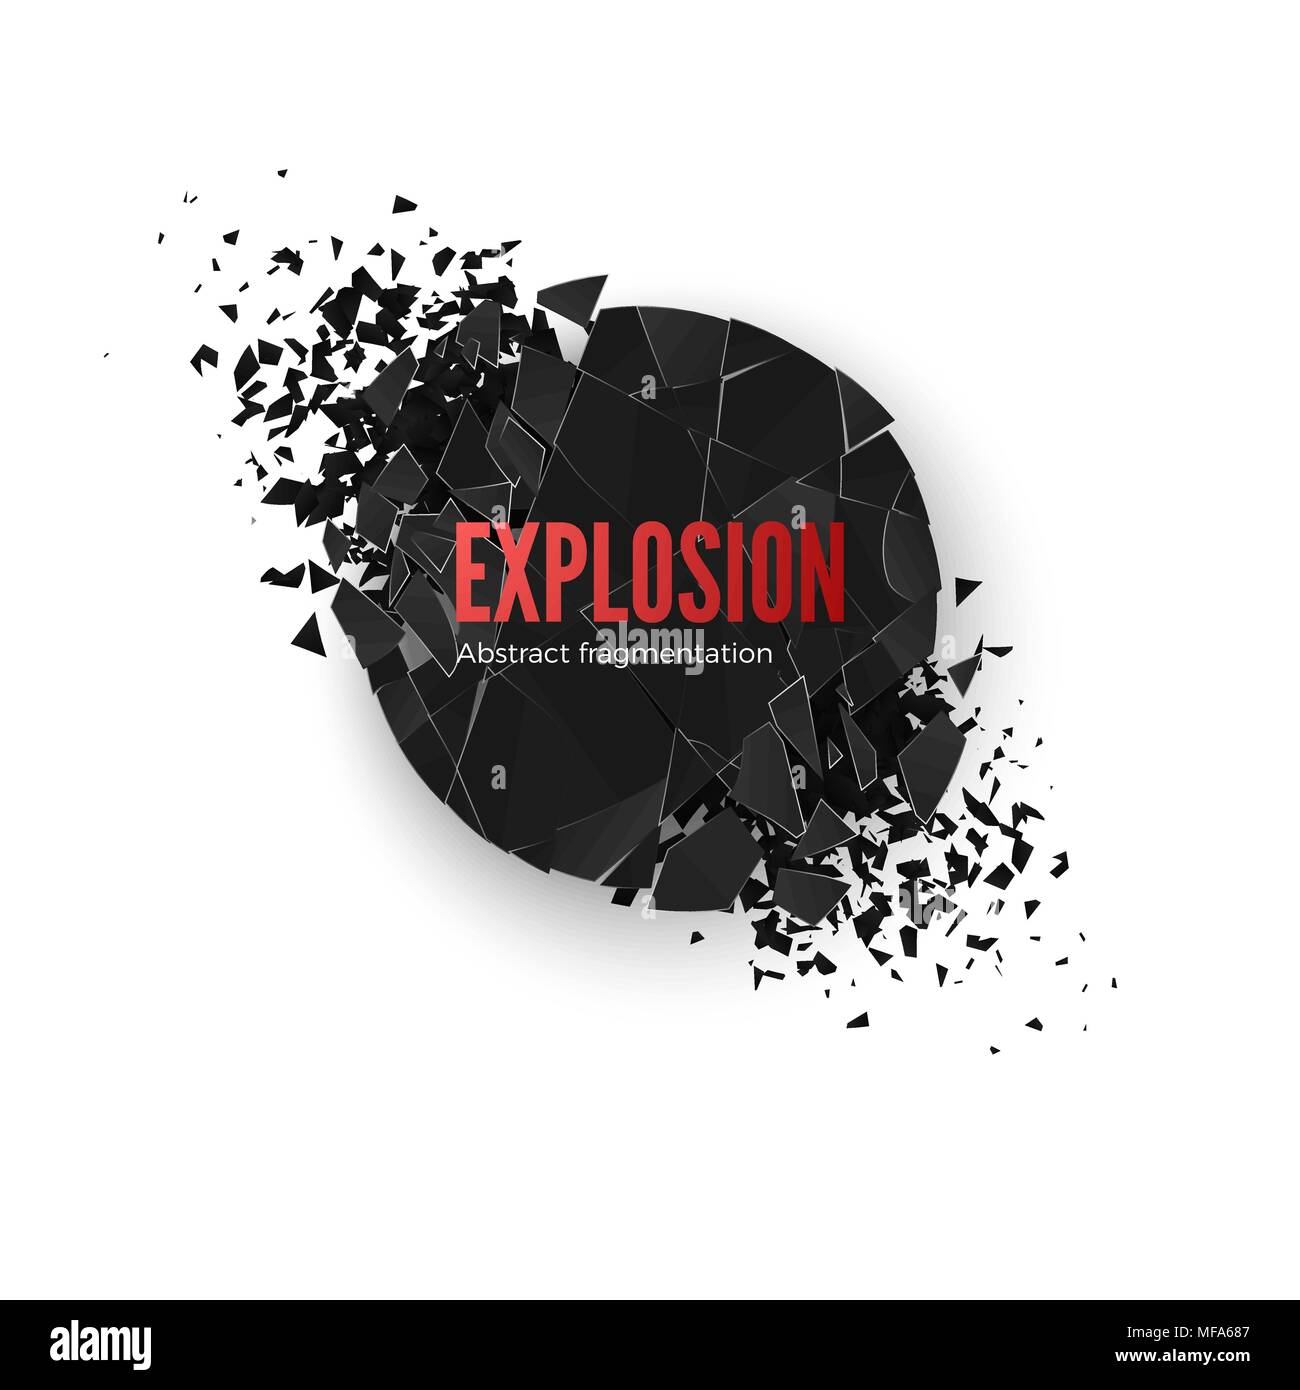 Banner Explosion  Simulation. Explode and destruction. Circle shatter effect. Vector illustration isolated on whide background - Stock Vector